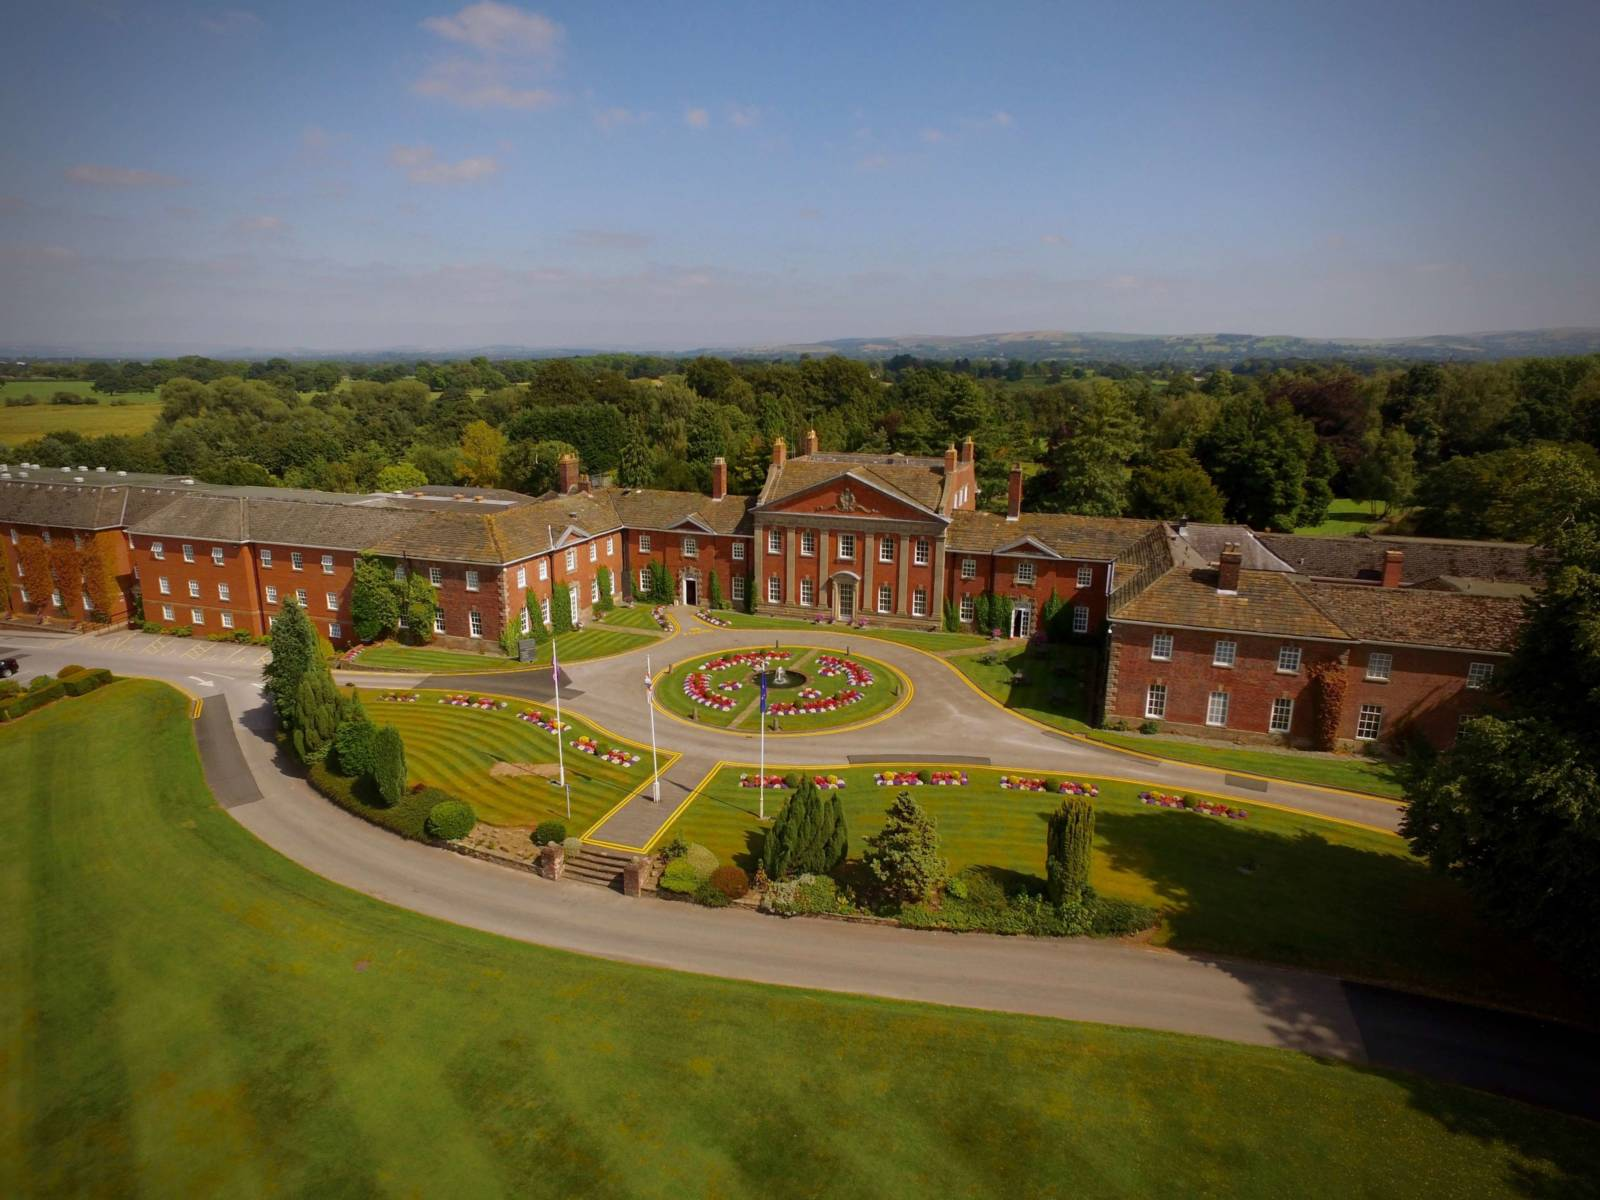 Win A Bed and Breakfast Stay Plus Dinner at Mottram Hall!